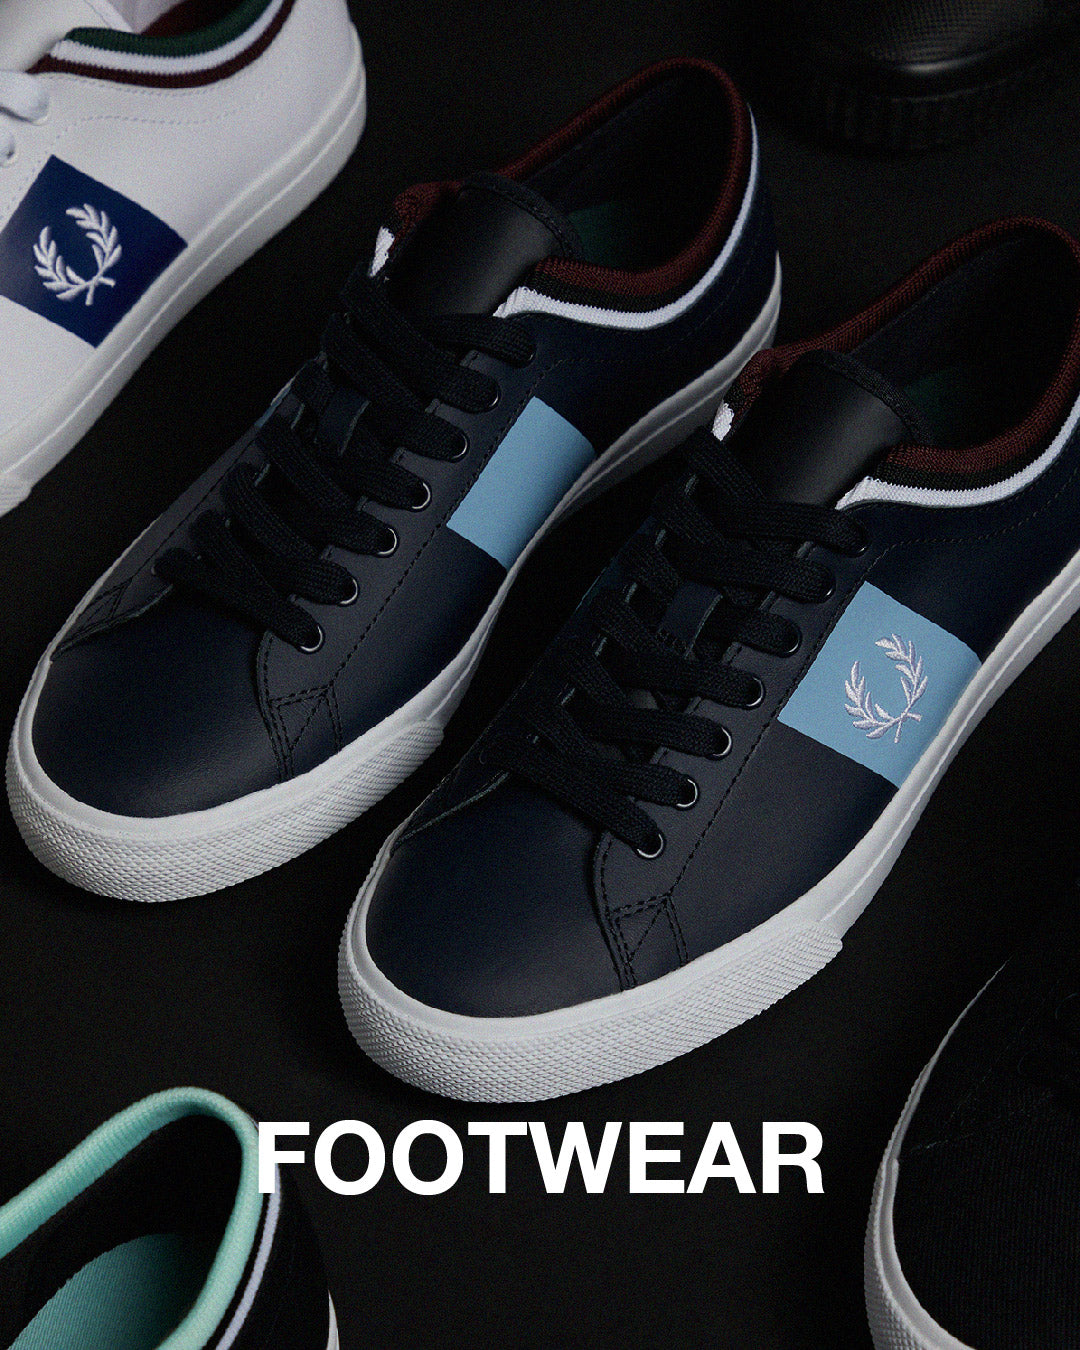 https://www.707.co.id/collections/fred-perry-shoes-collections